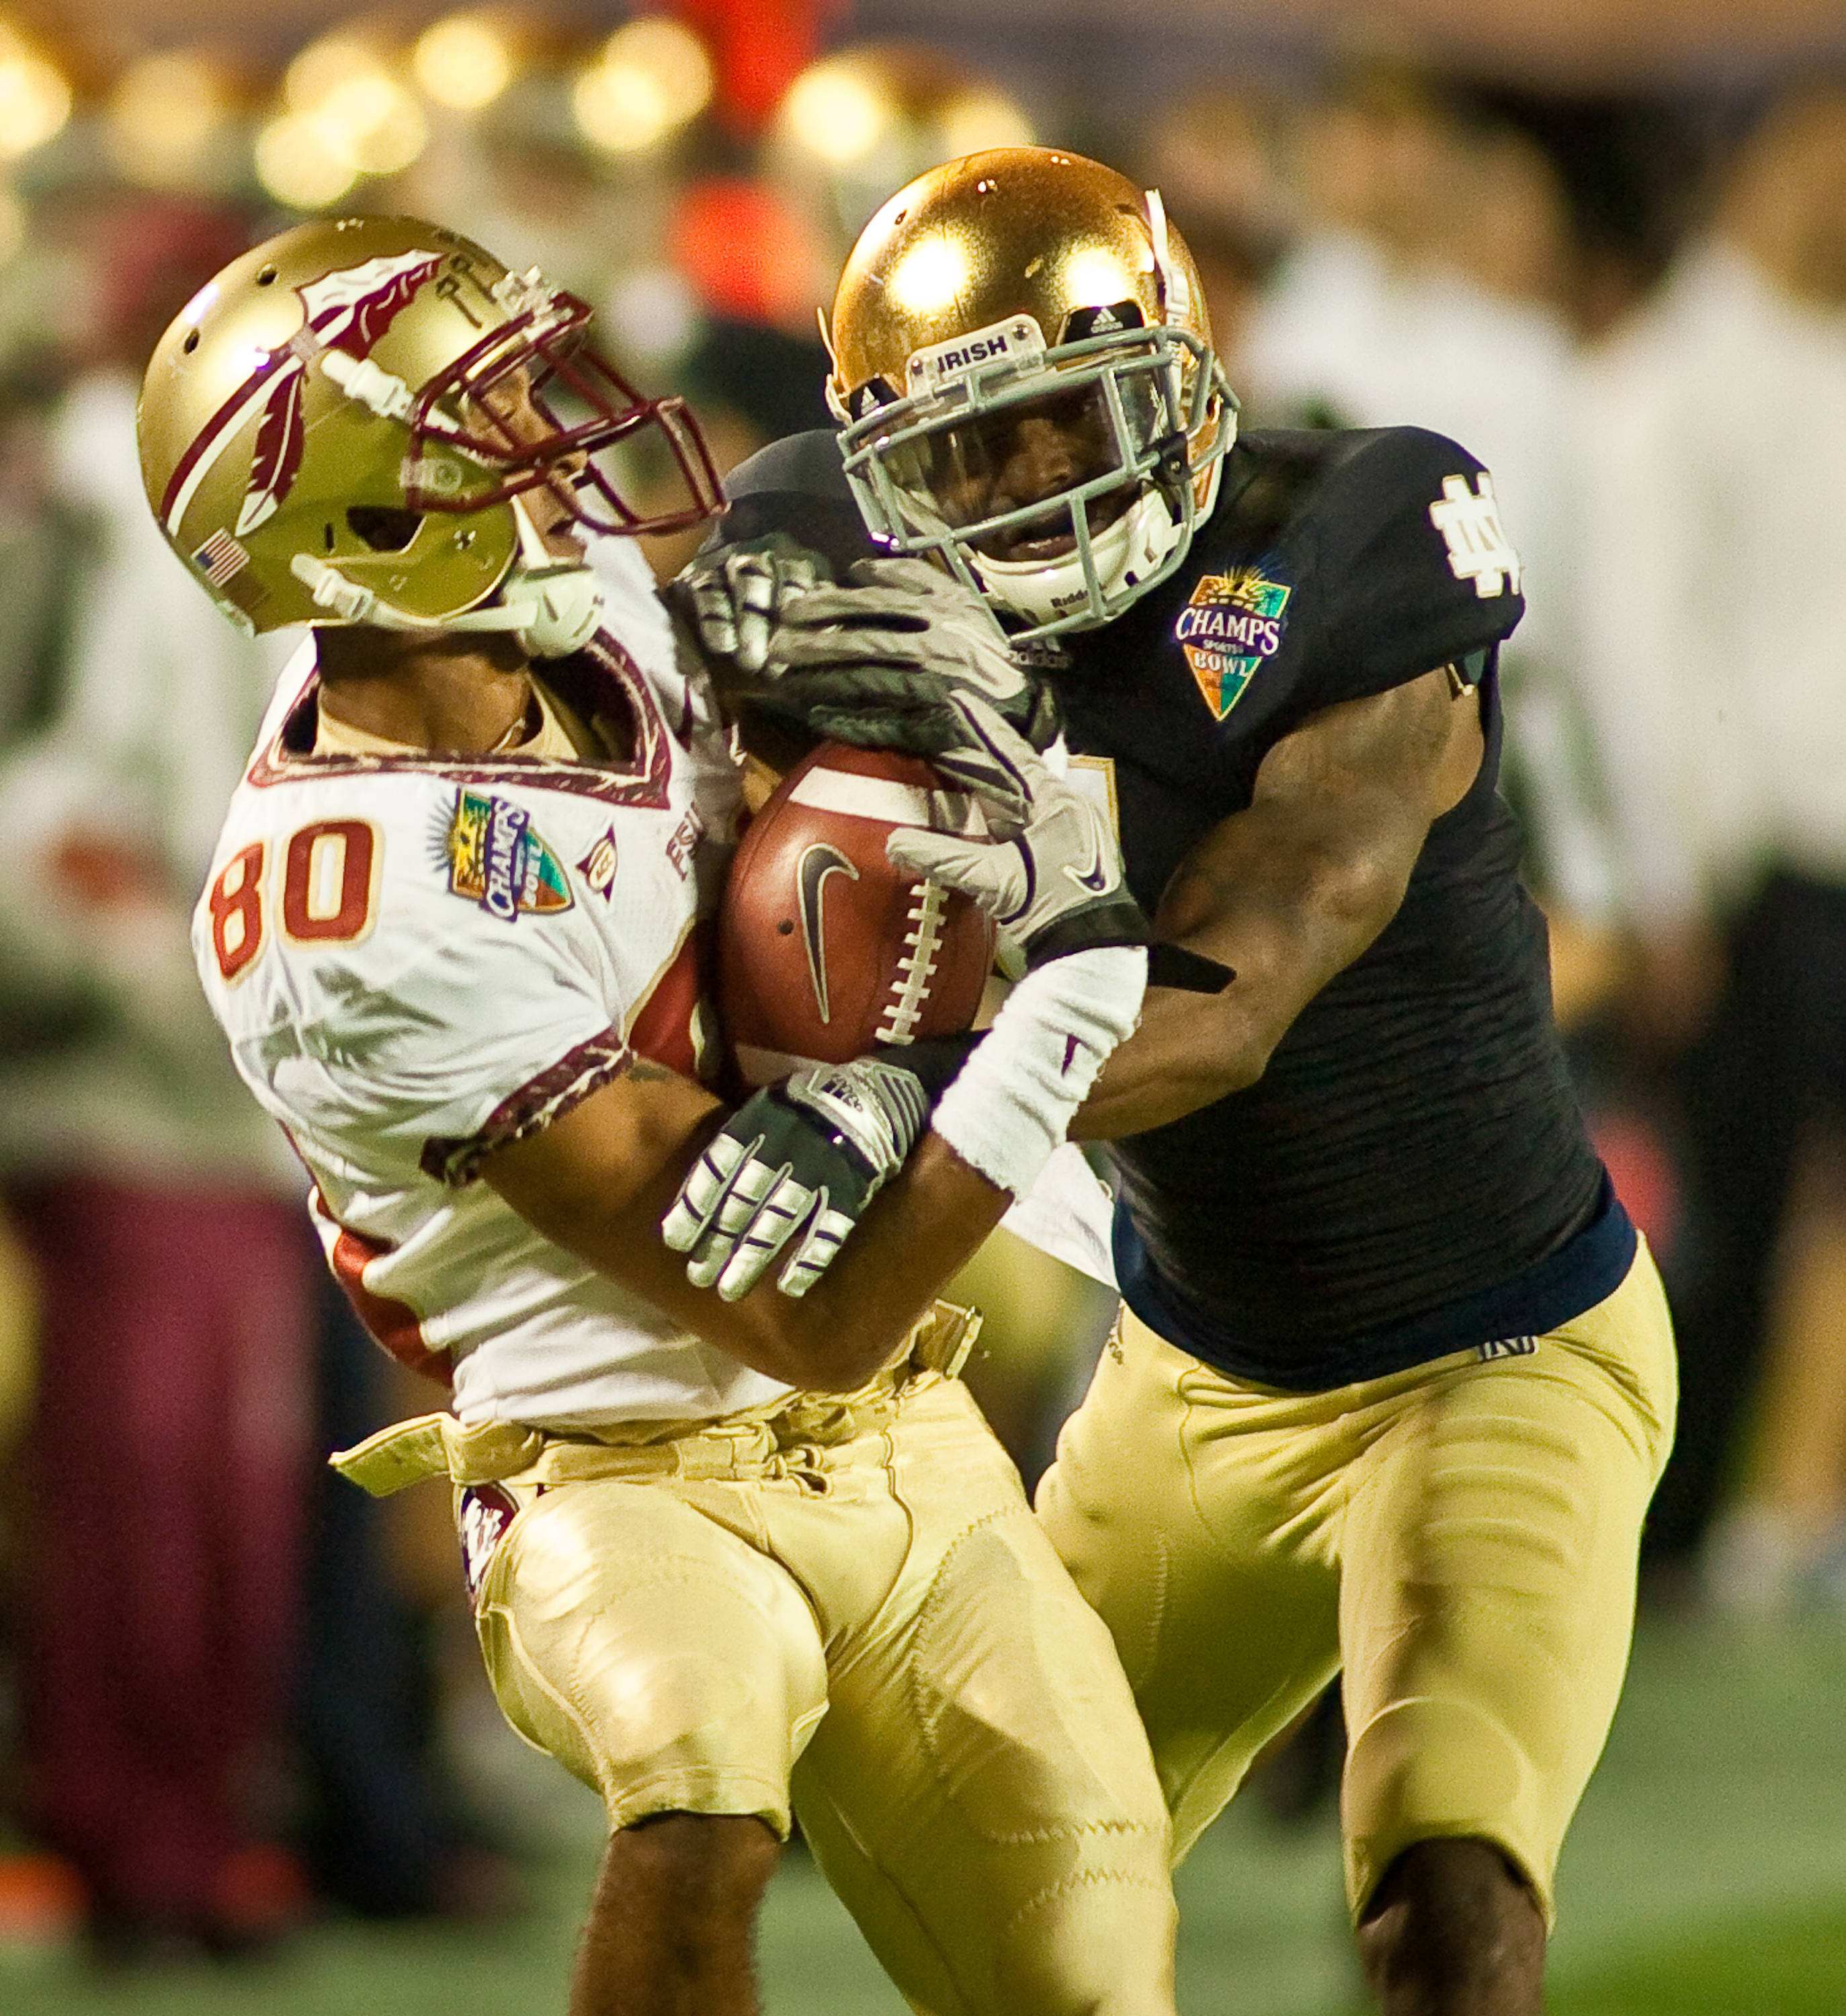 Rashad Greene's (80) spectacular catch against Notre Dame in the Champs Sports Bowl